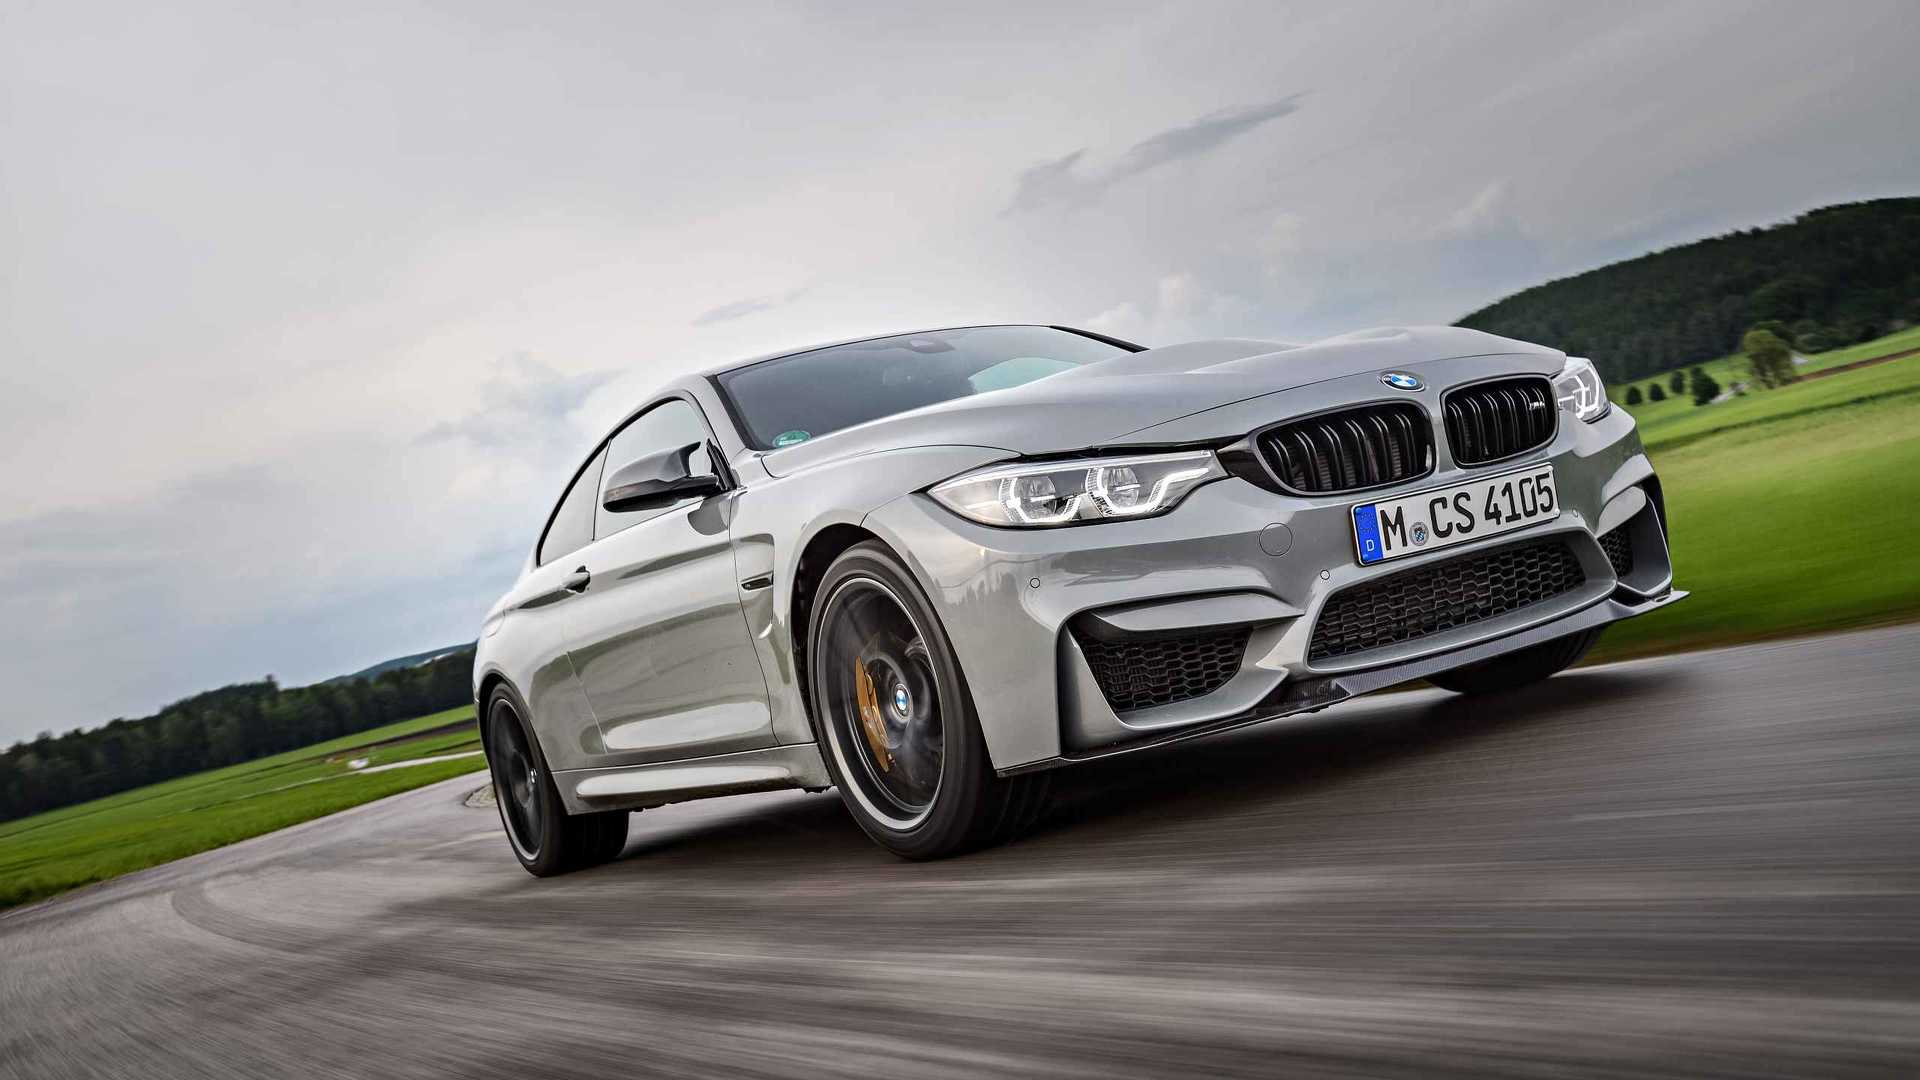 2017 bmw m4 cs first drive: a storming performance coupe